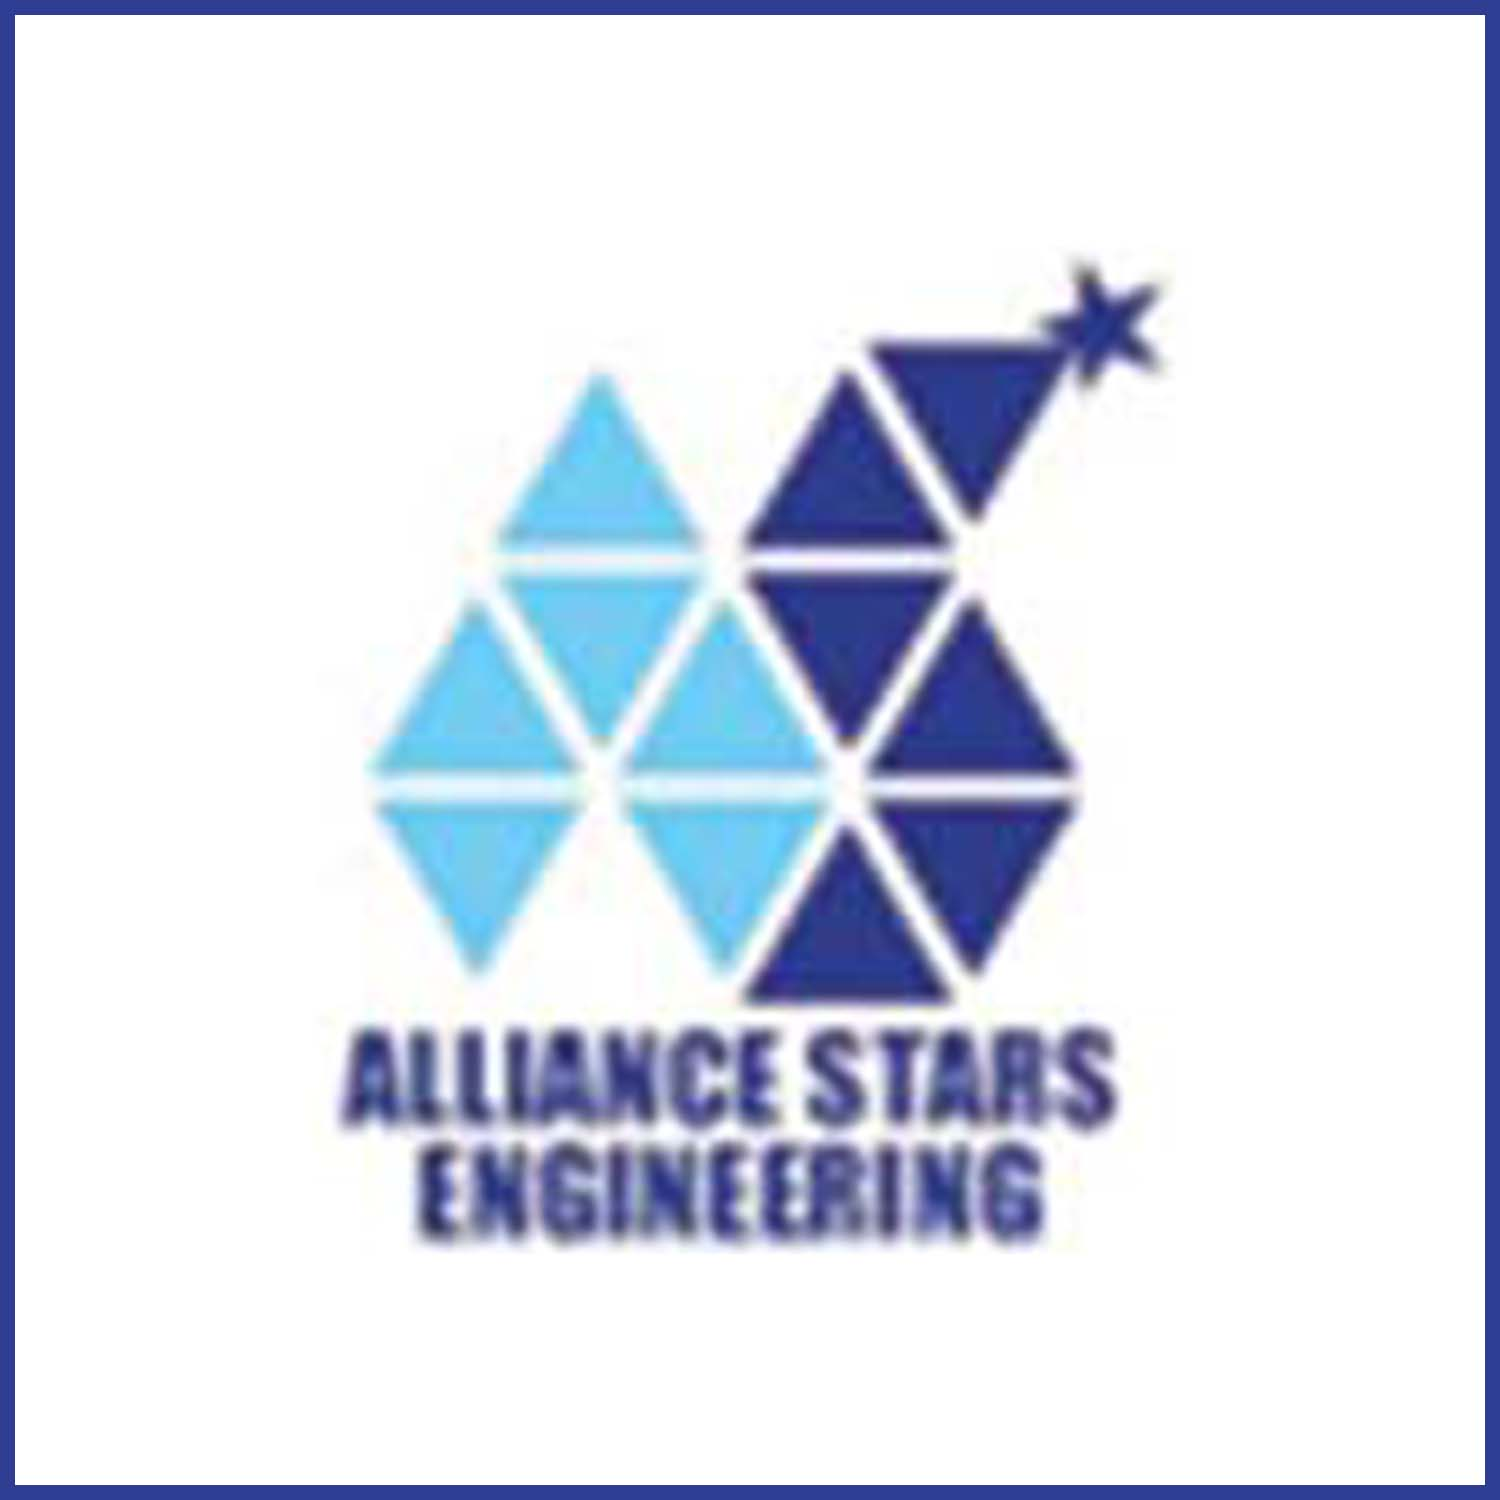 Alliance Stars Co., Ltd.